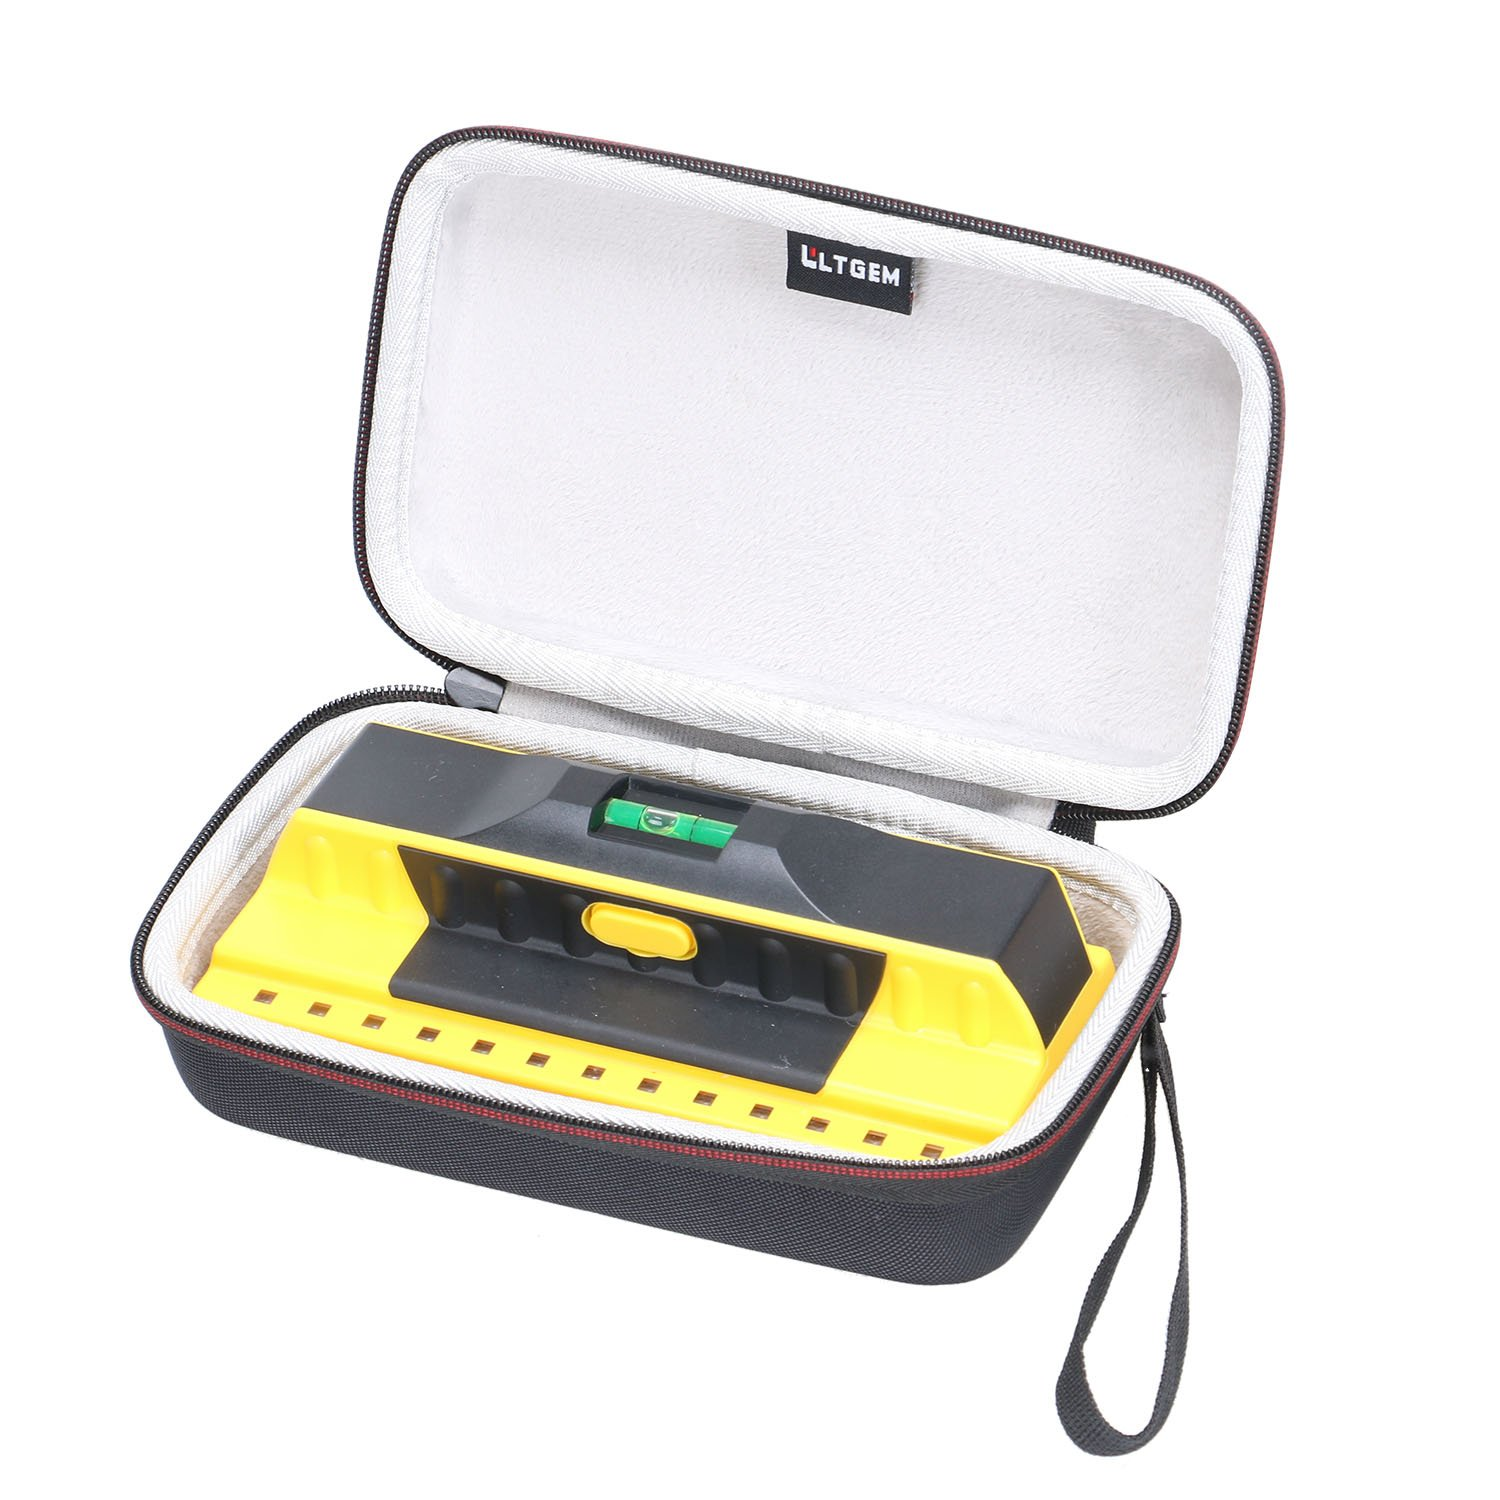 LTGEM Carrying Case for Franklin ProSensor 710/710+ Precision Stud Finder